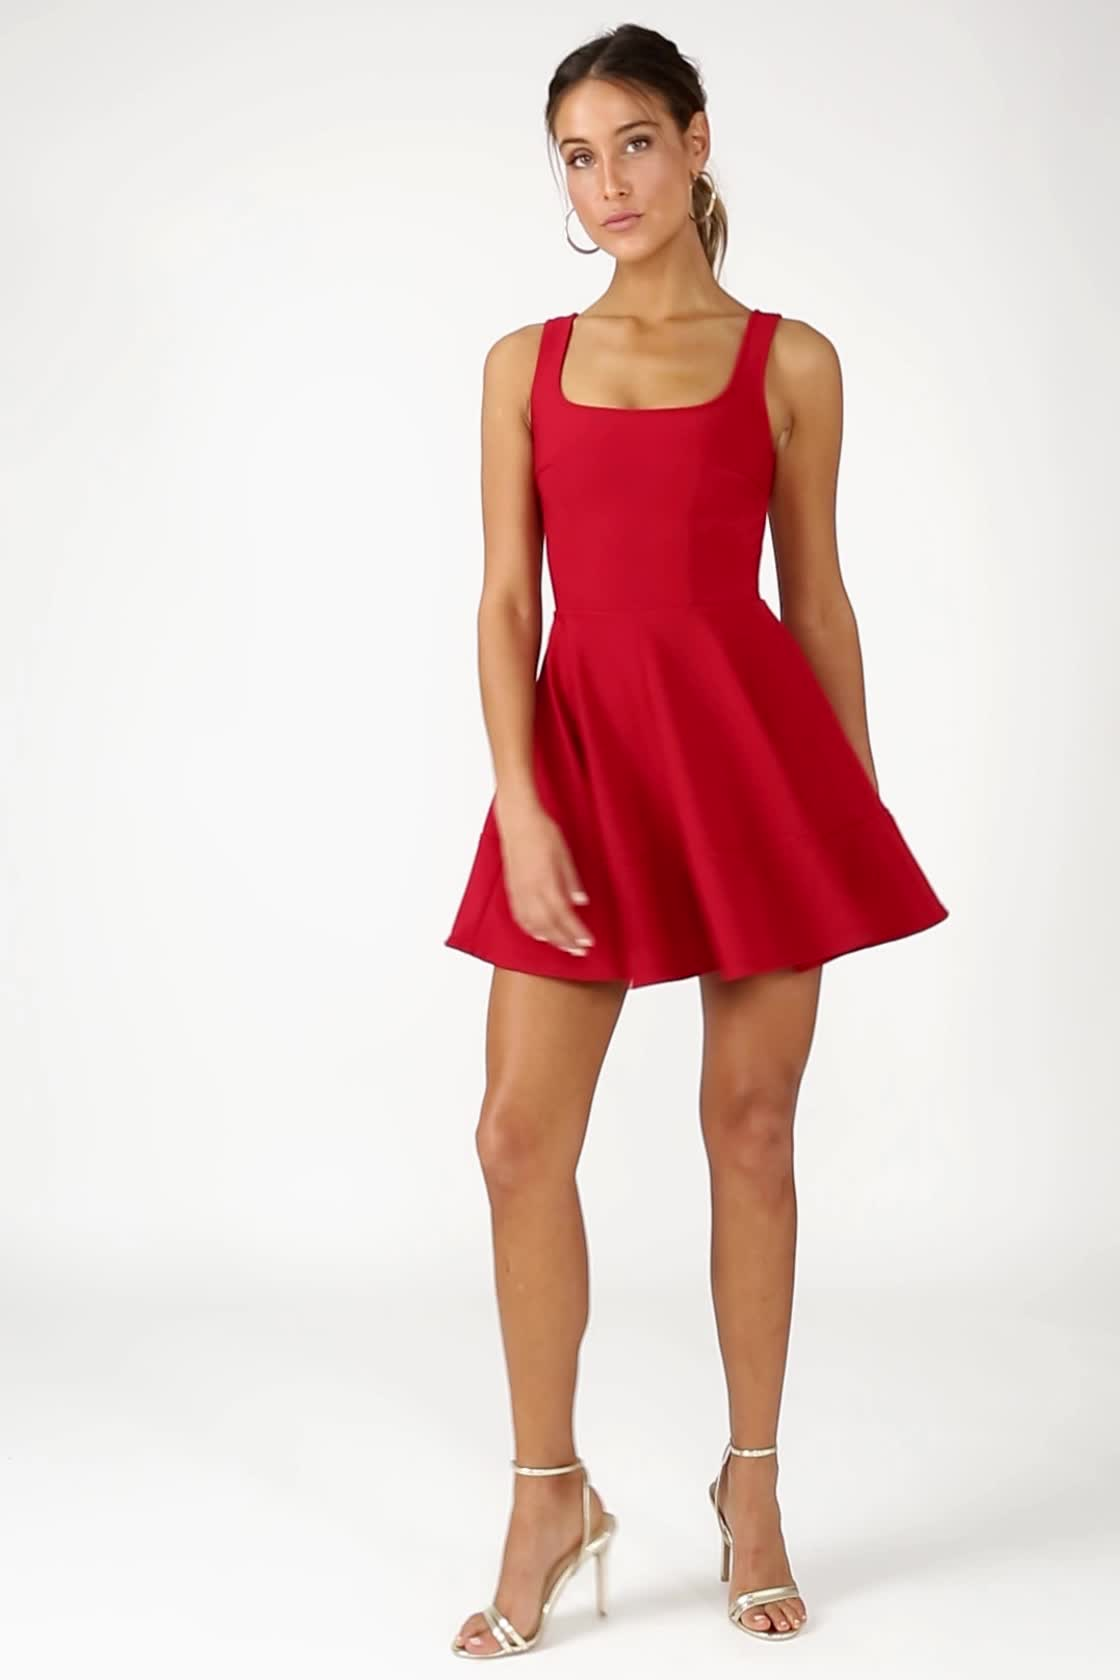 Pretty Red Skater Dress - Red